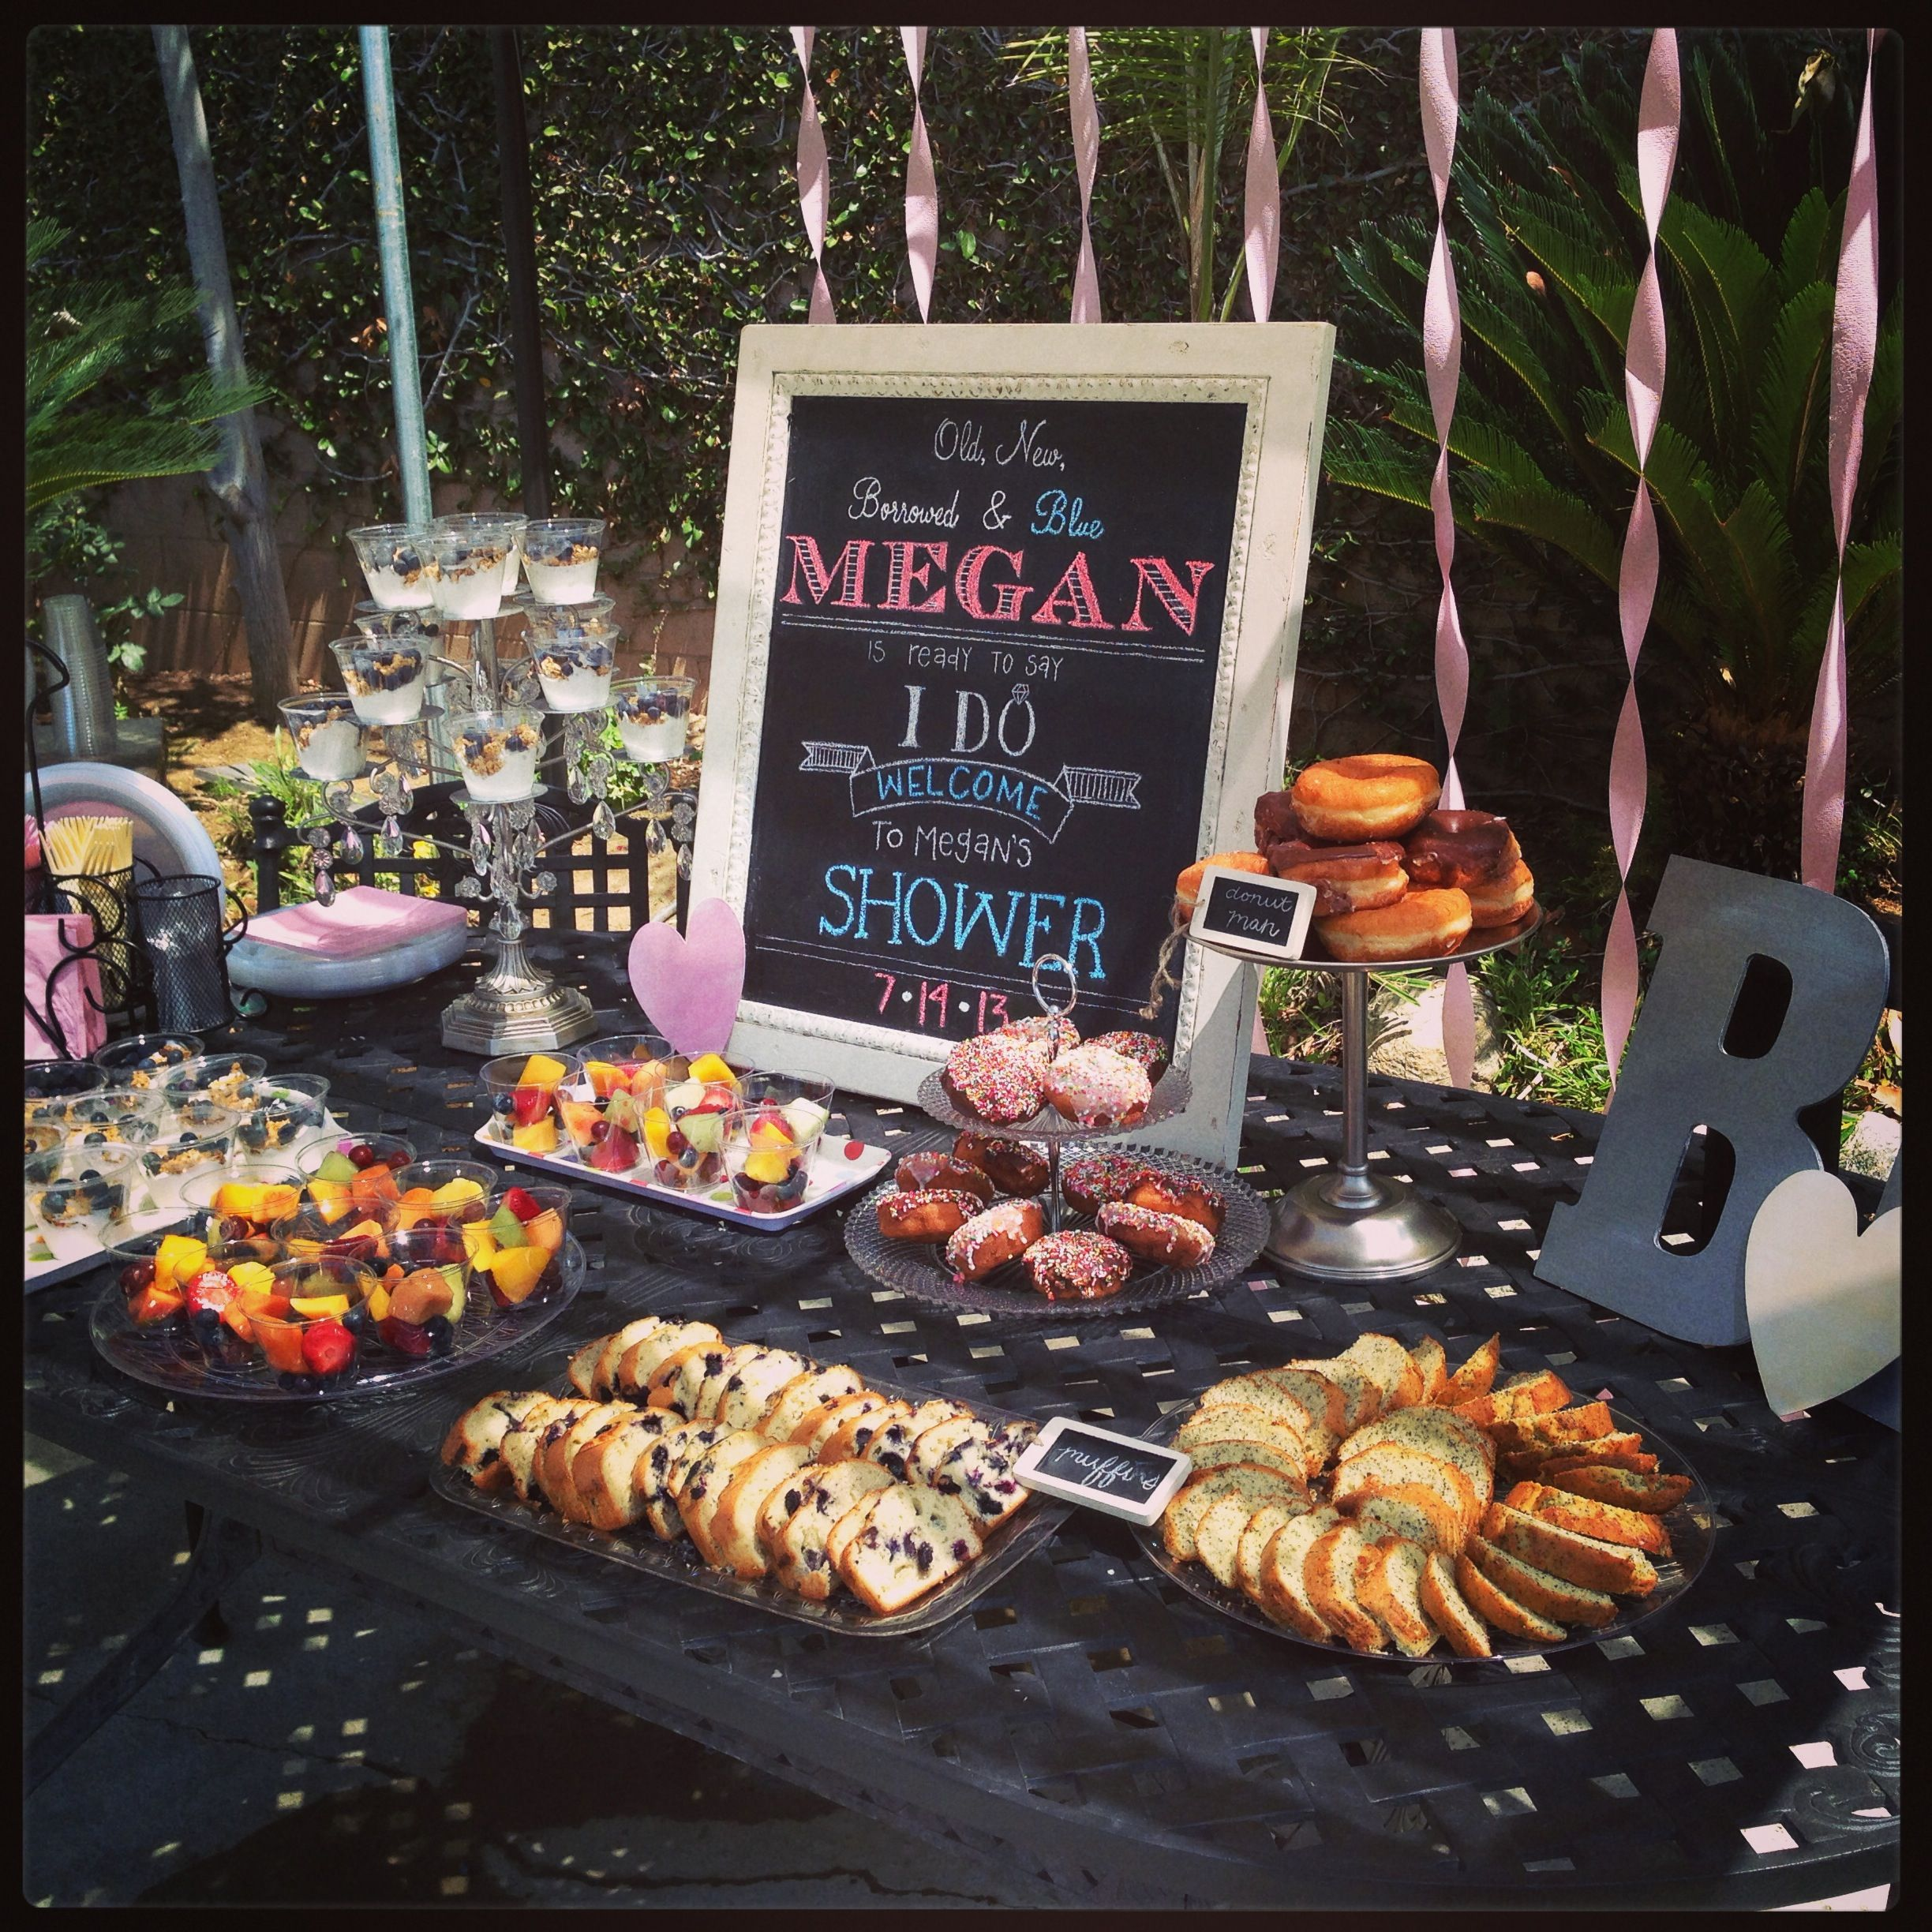 Best Food For Wedding Buffet: Old, New, Borrowed, & Blue... Ready To Say I Do! ;) Great